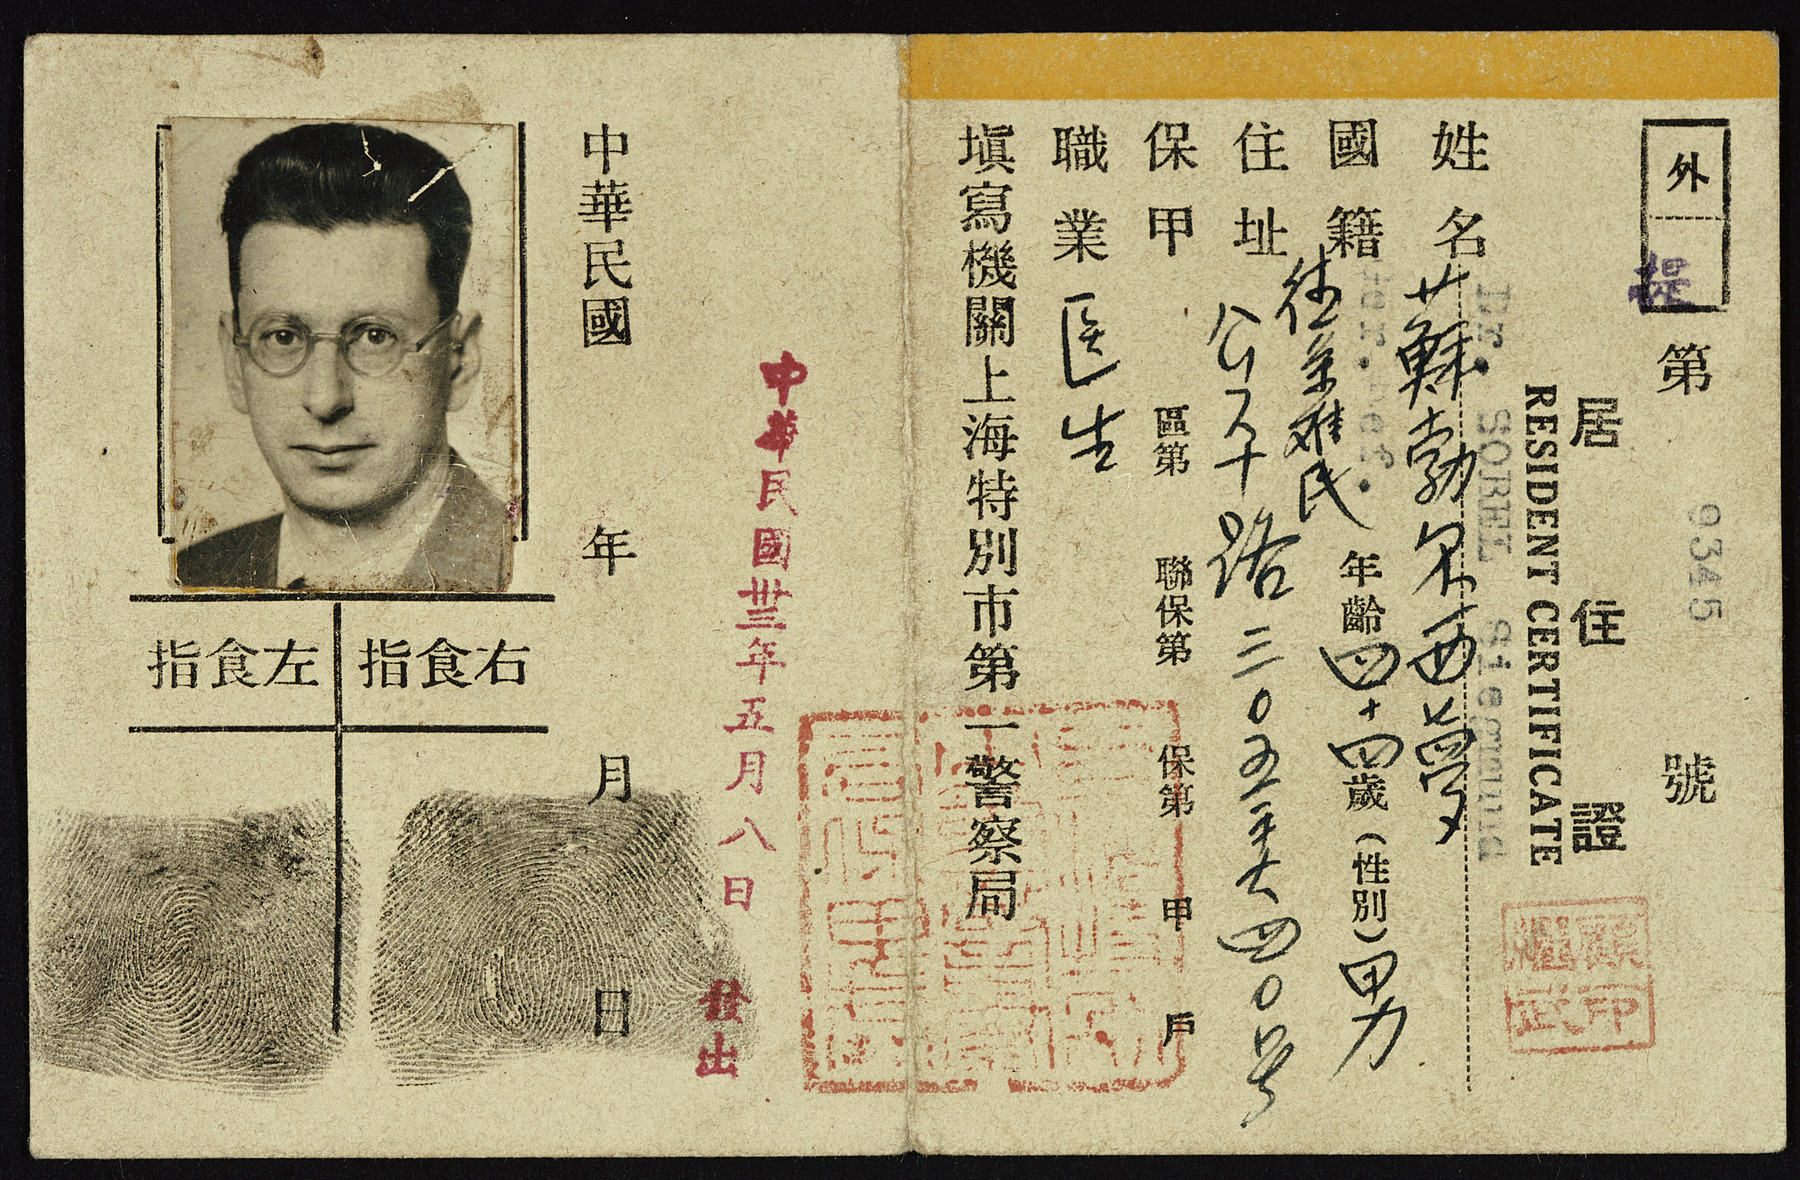 Identification card and resident certificate issued to Dr. Siegmund Sobel.  The document printed in both Chinese and English states that the bearer is obligated to carry the card with him at all times.